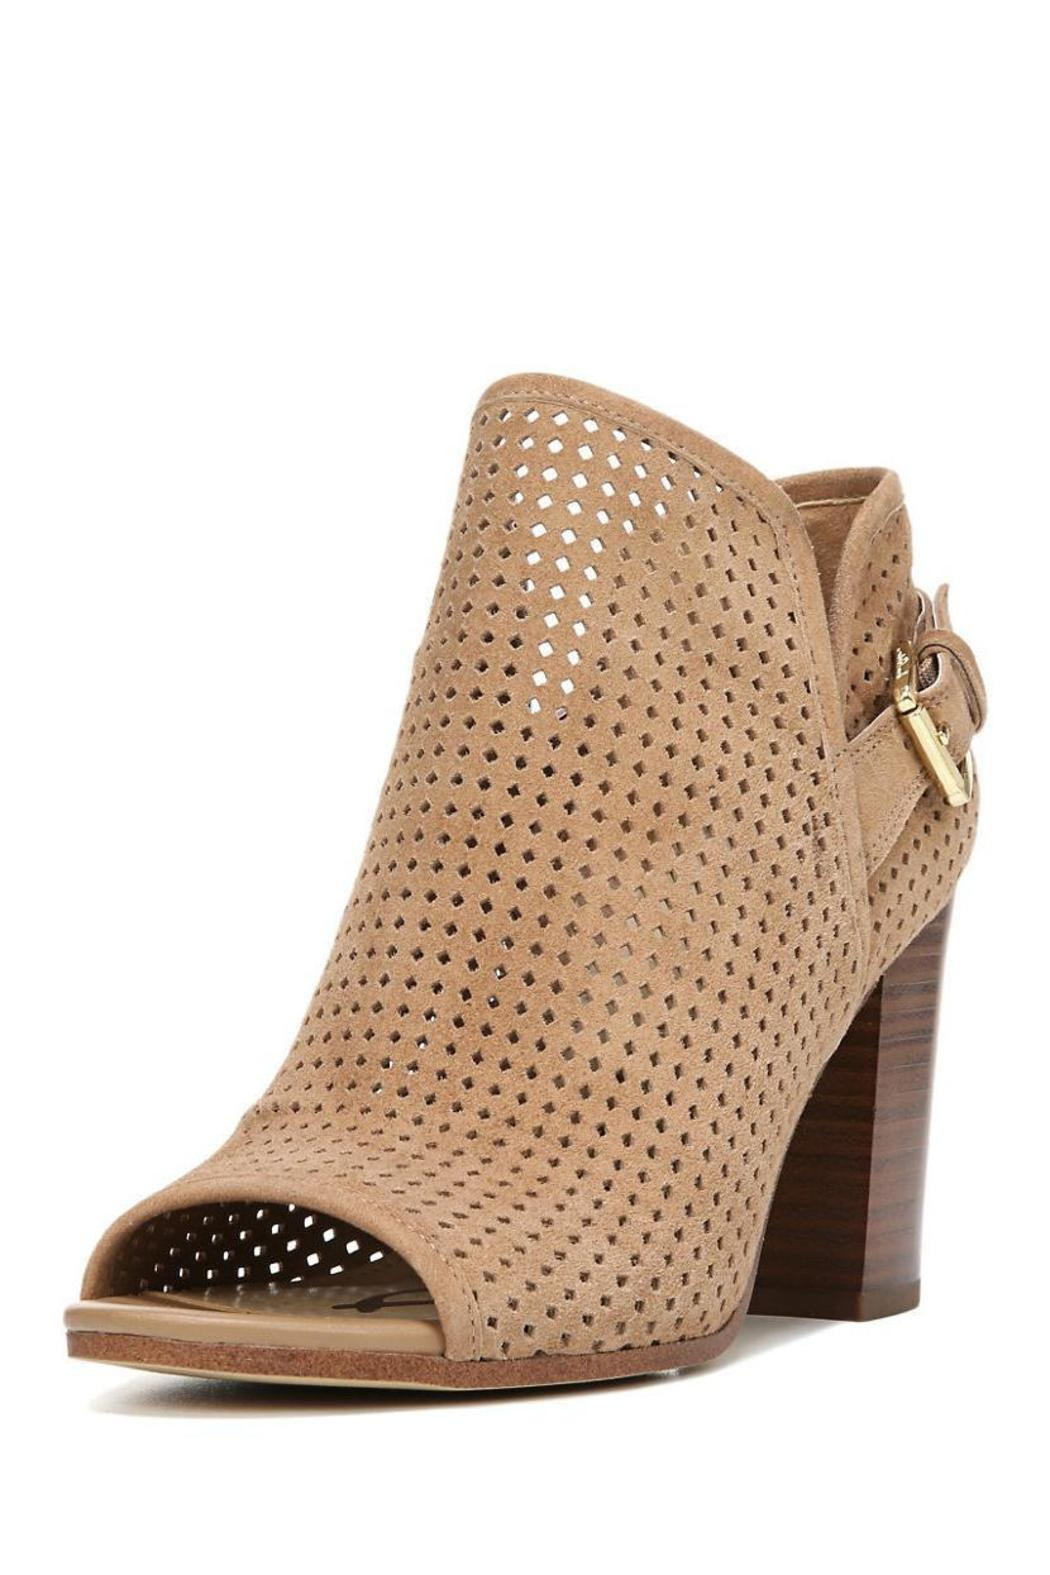 0187809d1f9e Sam Edelman Easton Heeled Booties from Hudson Valley by Bfree ...